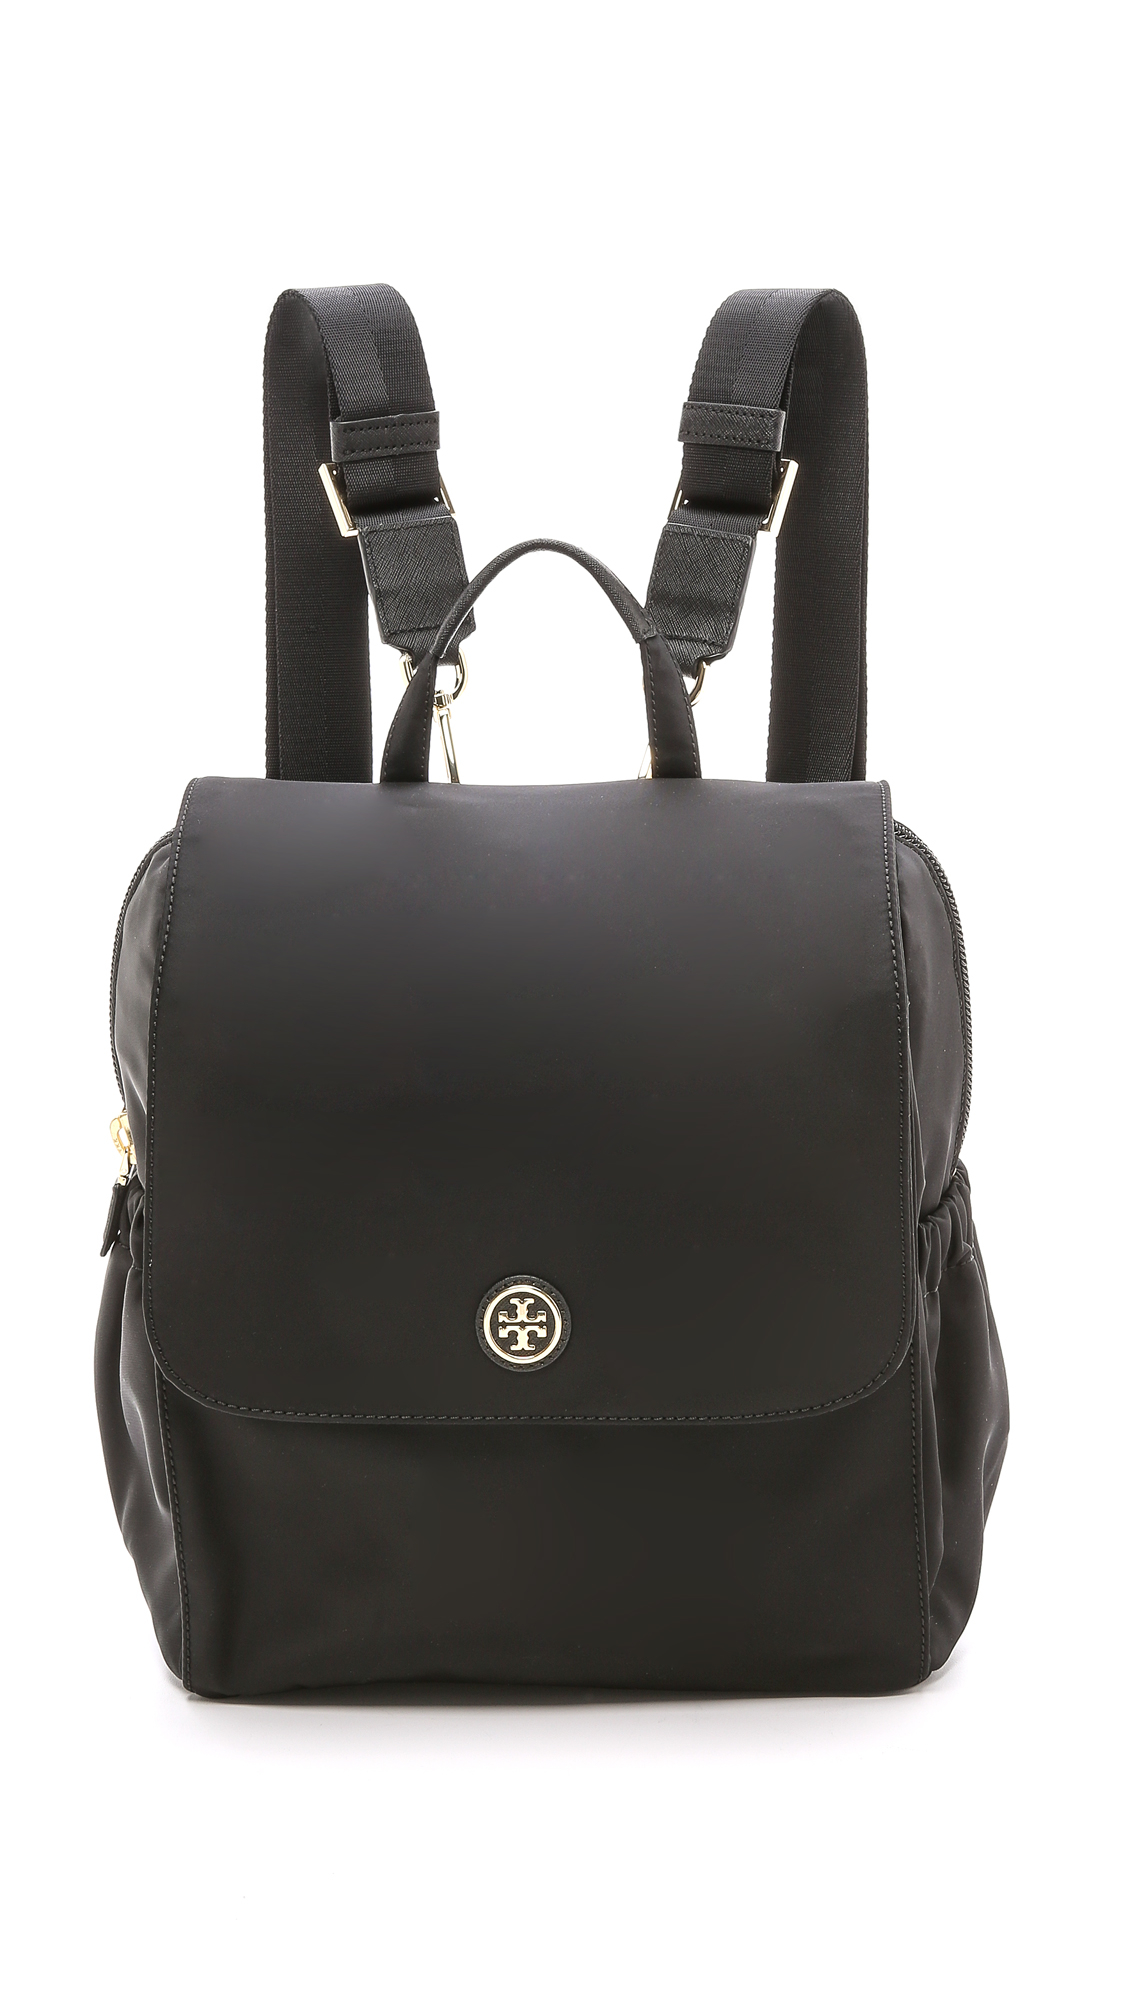 Tory Burch Travel Nylon Baby Backpack Black In Black Lyst